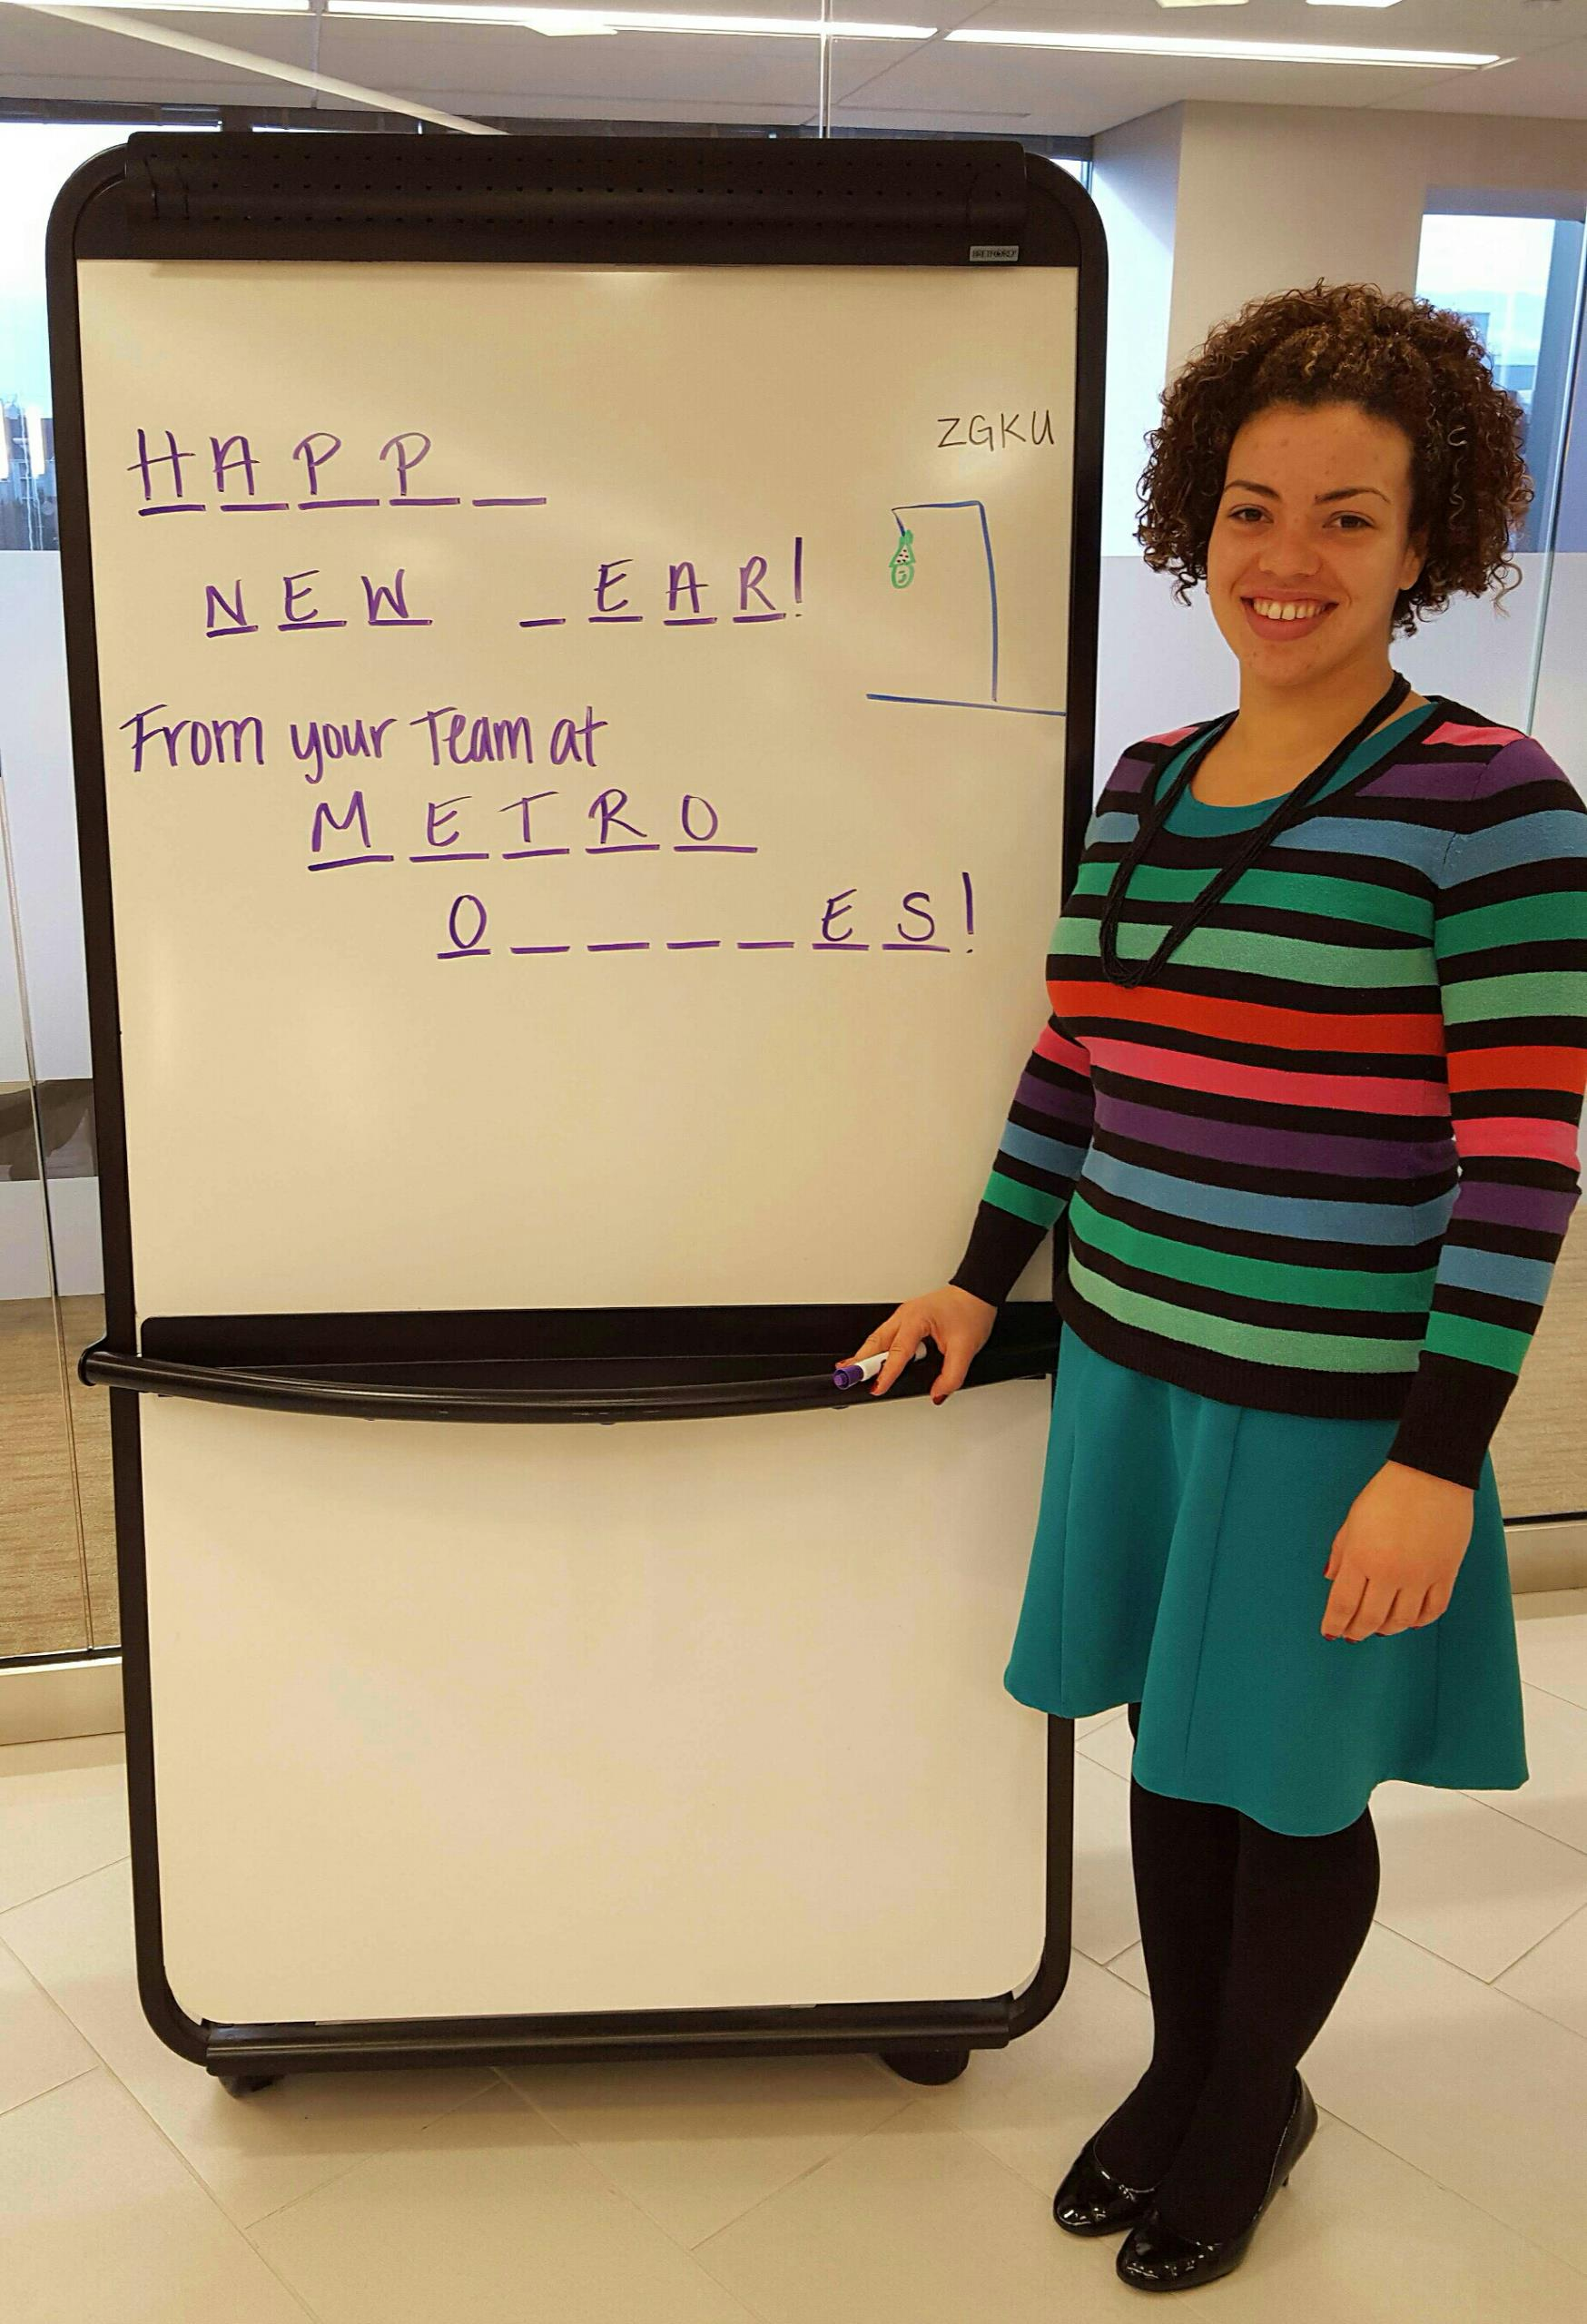 Herndon, VA - Happy New Year from your community at Metro Offices Herndon, Virginia!  We borrowed the complimentary white board from our Sunrise Meeting Space for a quick game!  Love to keep the community spirit!